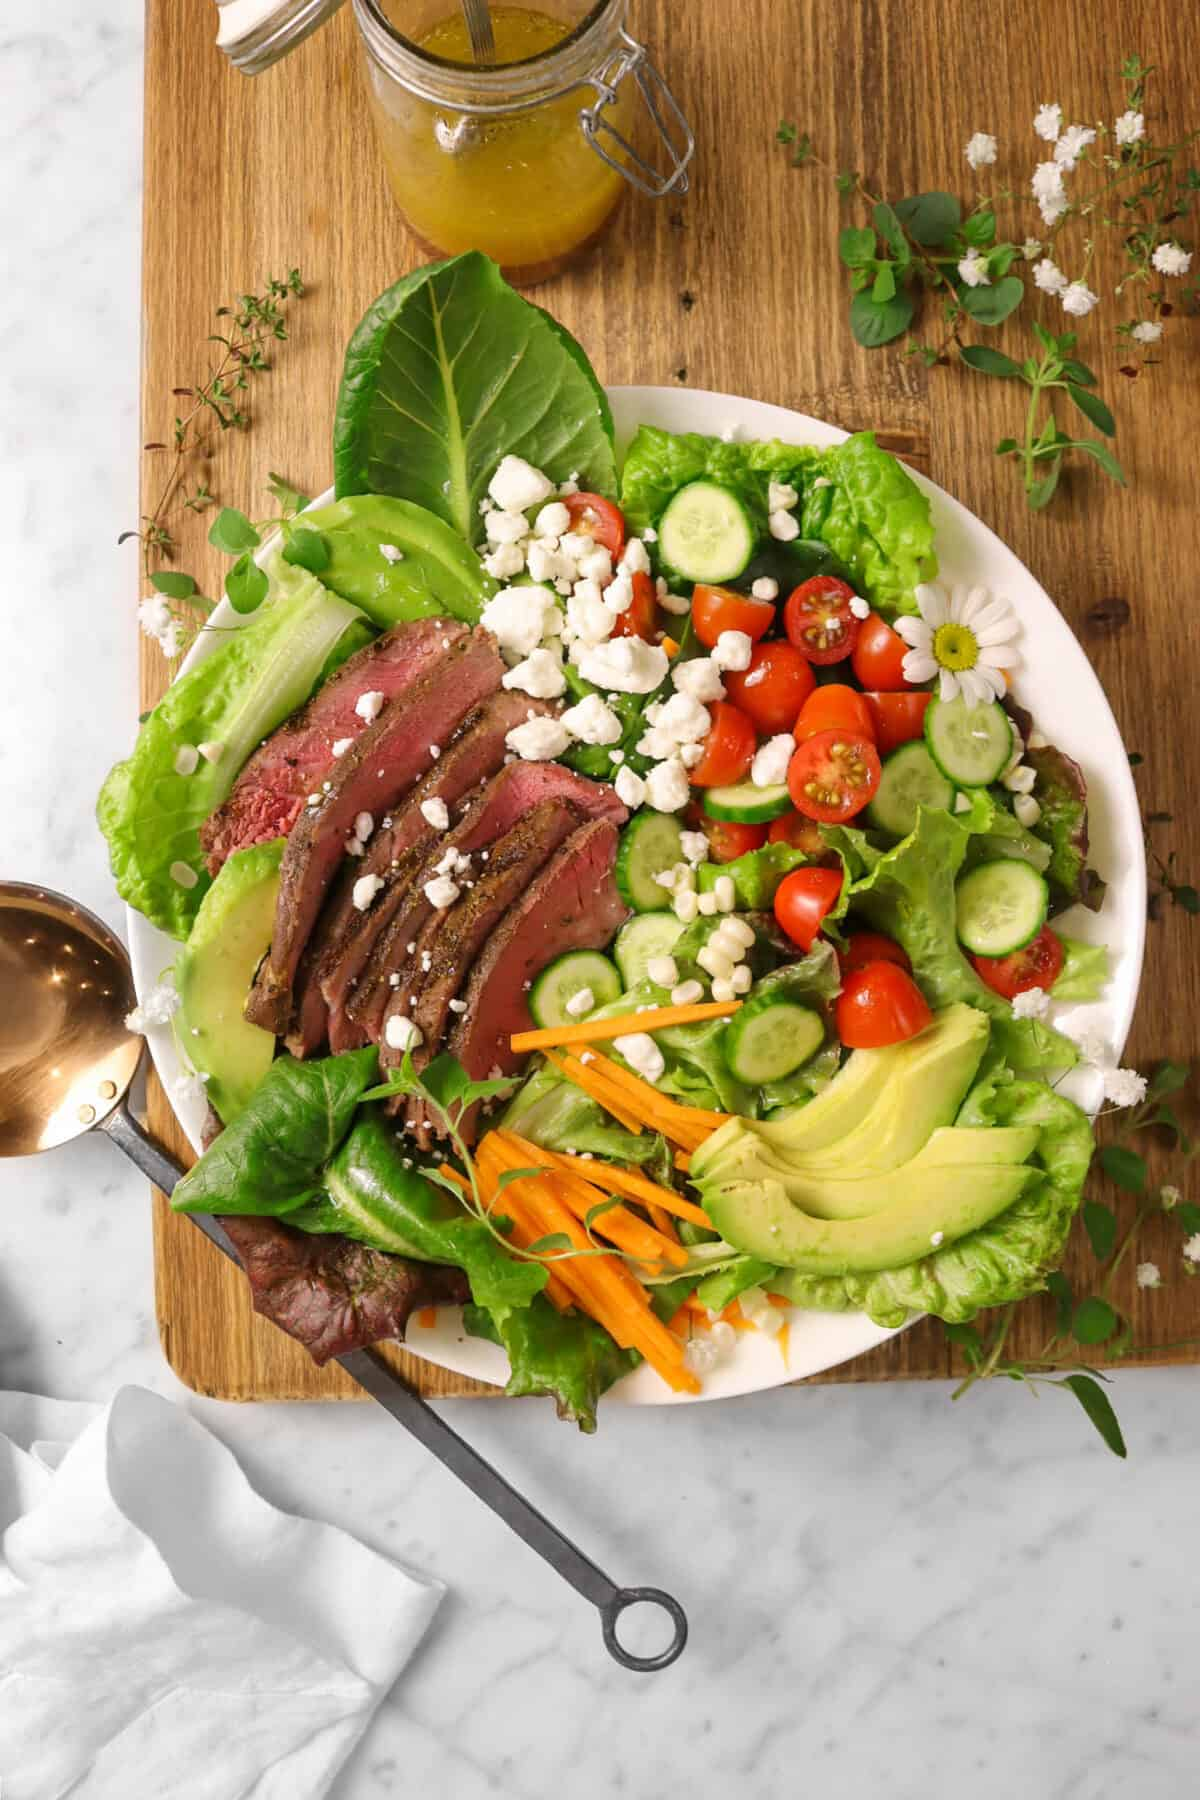 steak salad with white flowers, herbs, a copper serving spoon and a white napkin on a wood board